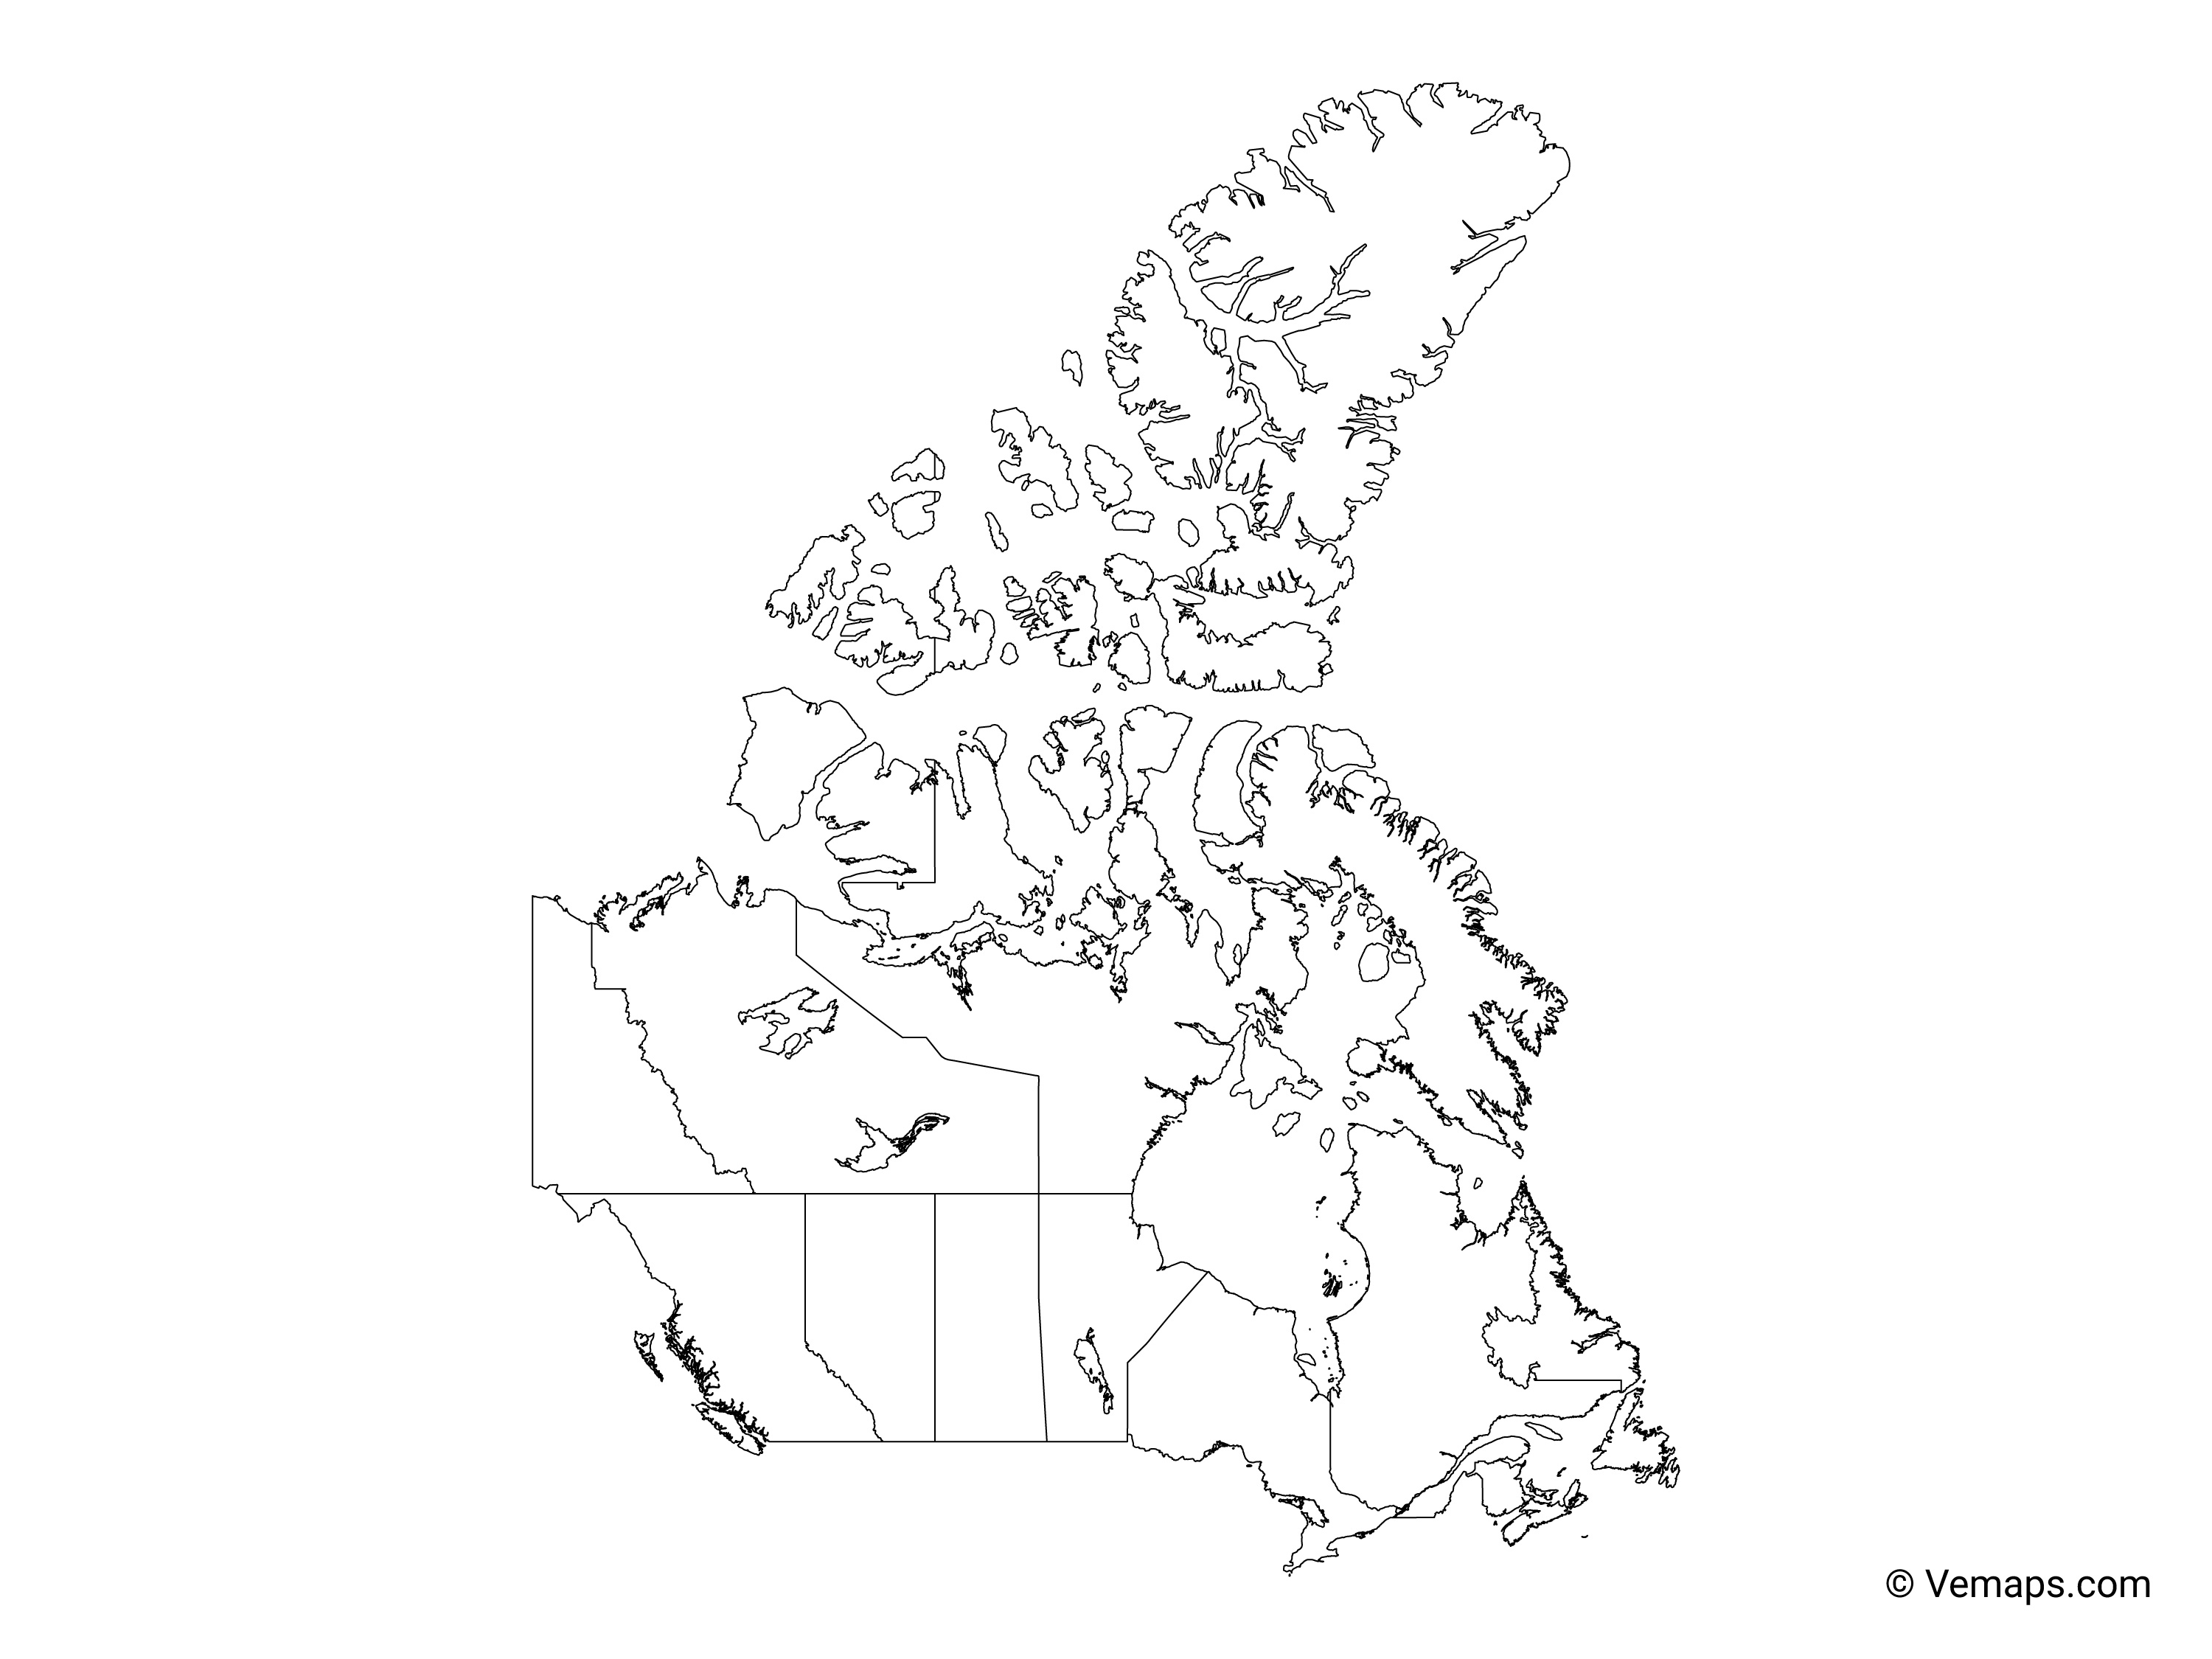 Outline Map Of Canada With Provinces.Outline Map Of Canada With Provinces And Territories Free Vector Maps